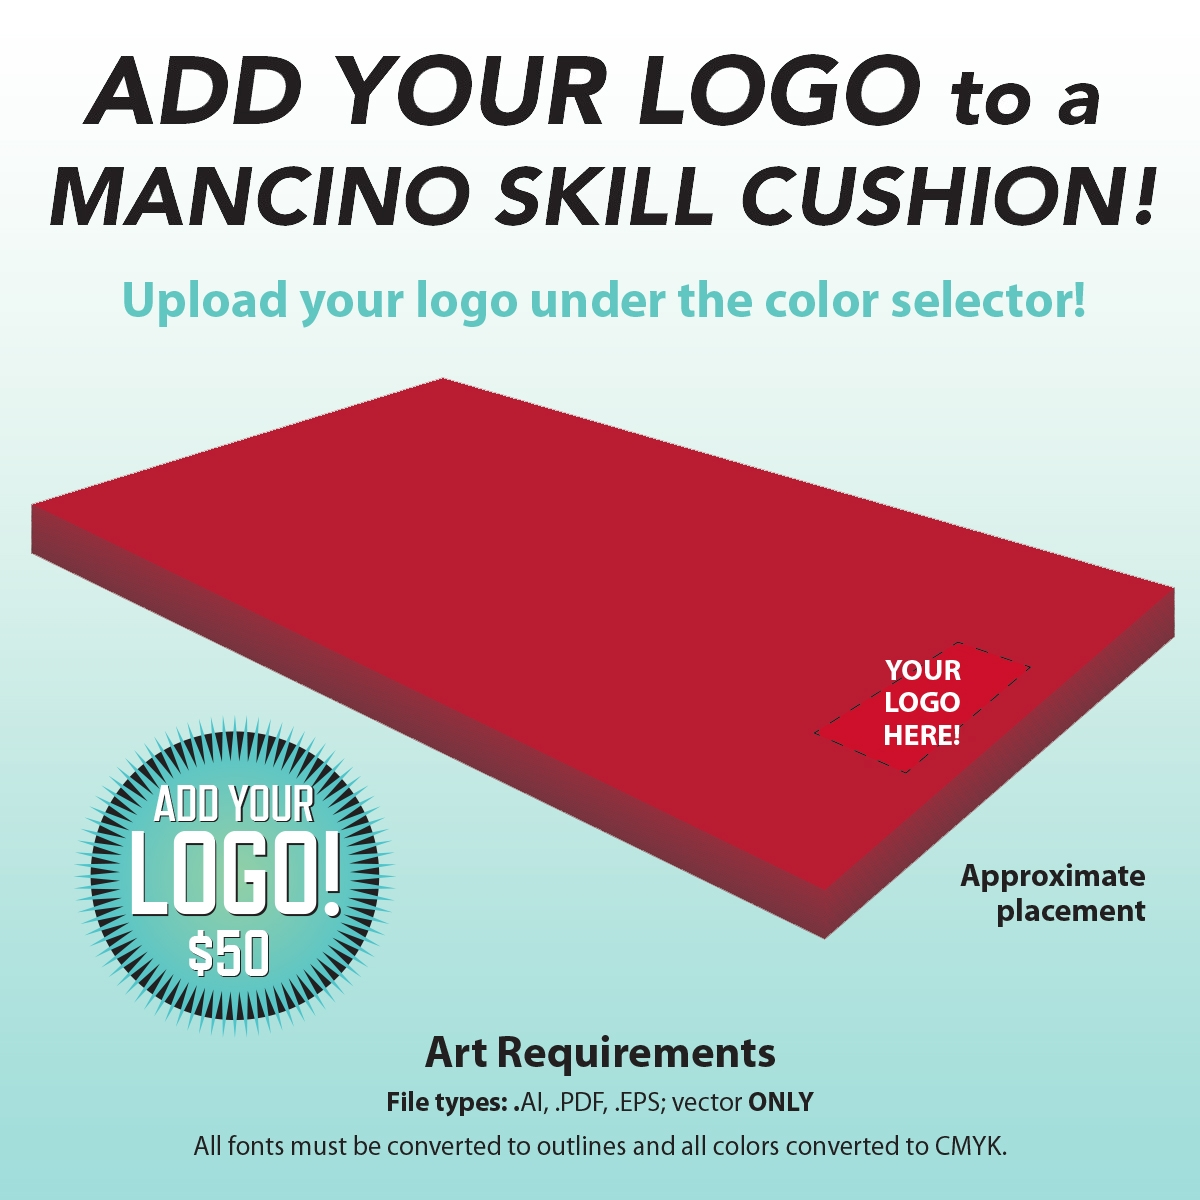 customizing gym options from mancino by adding your logo to equipment